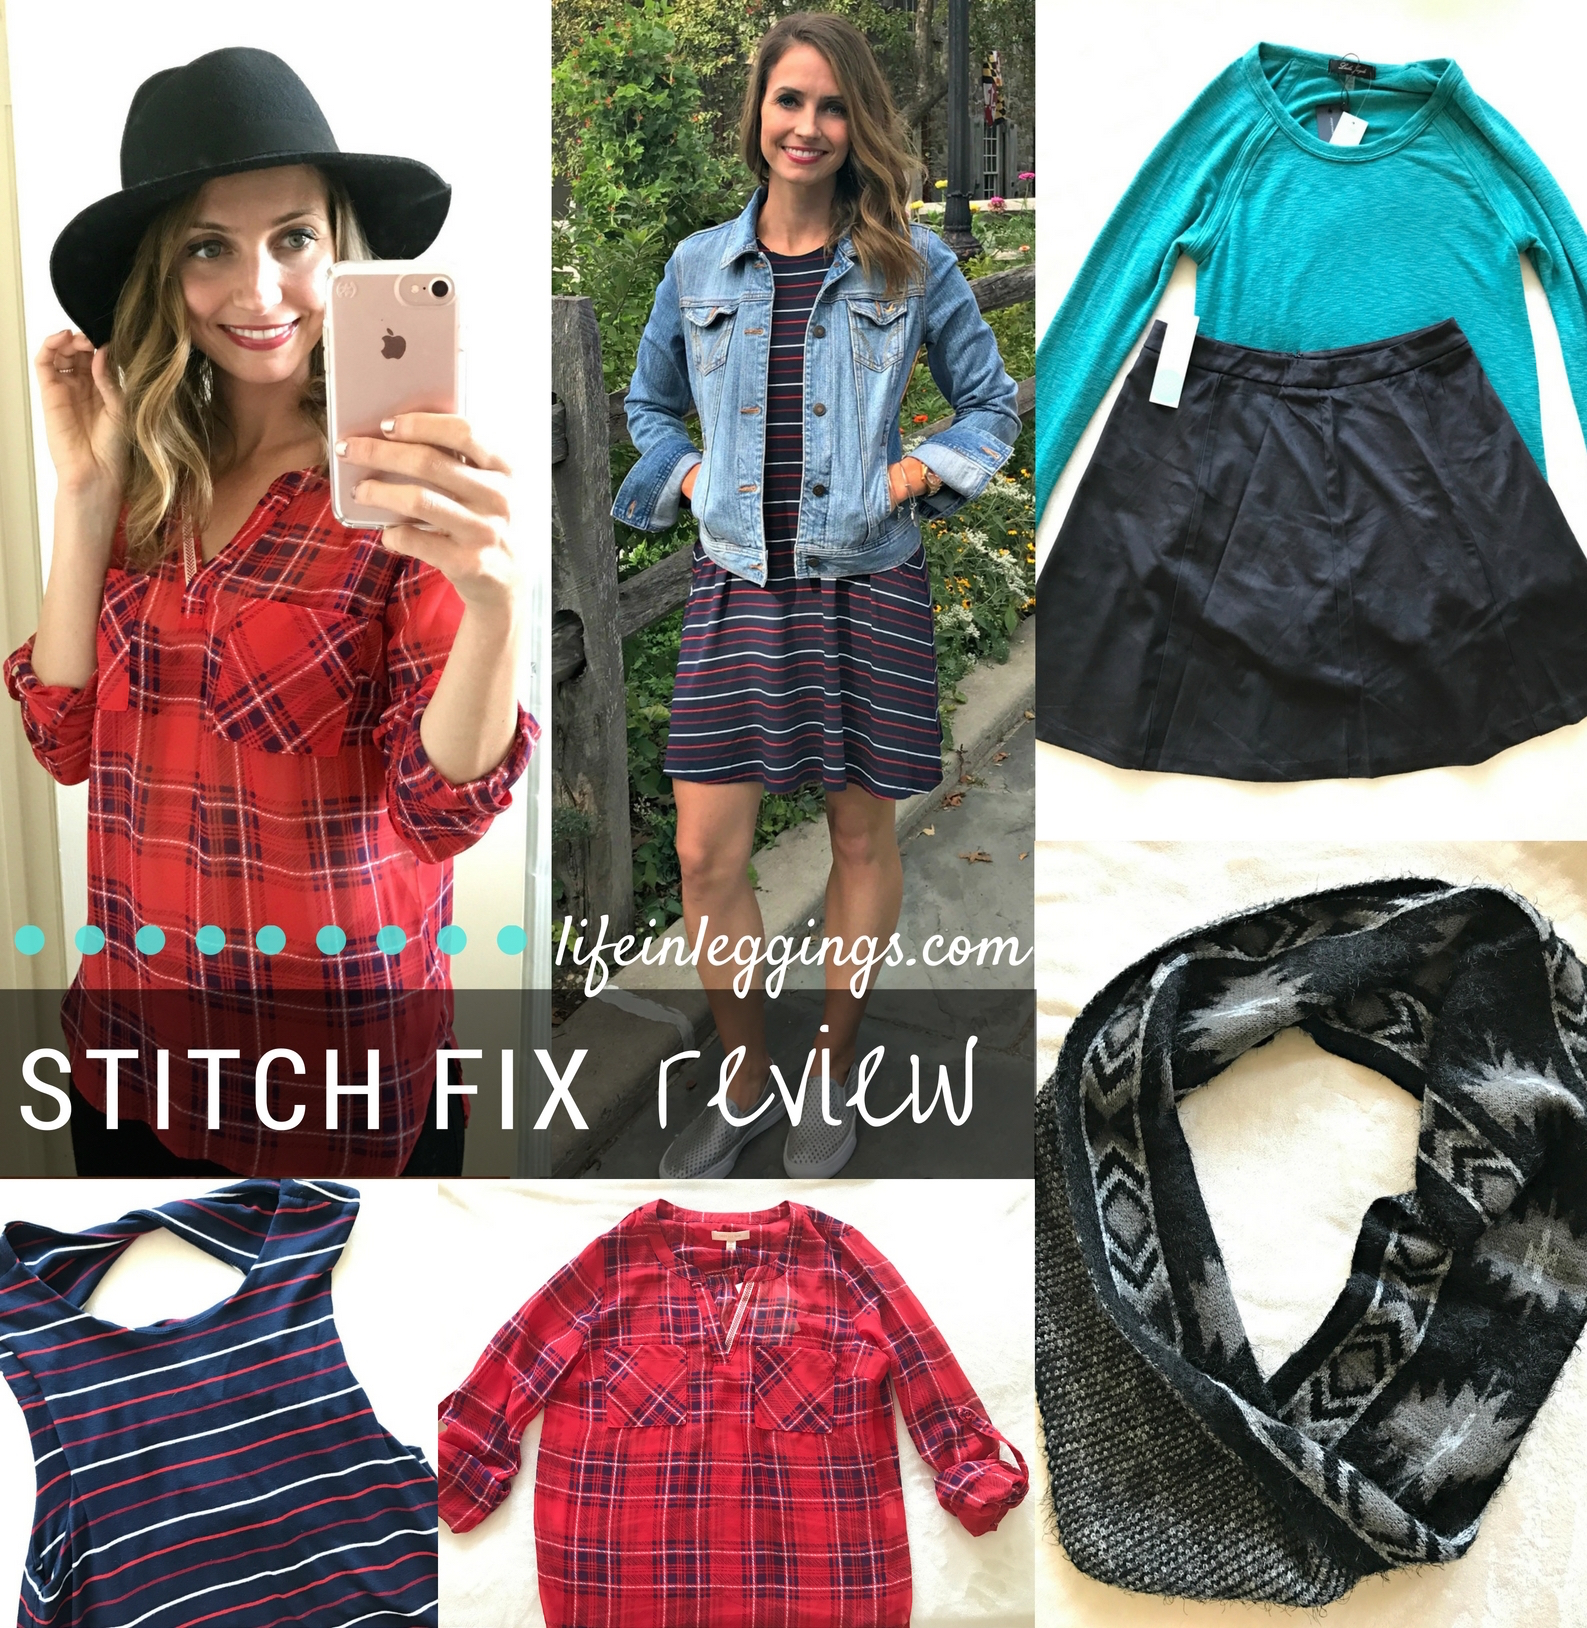 stitch-fix-review-september-fall-life-in-leggings